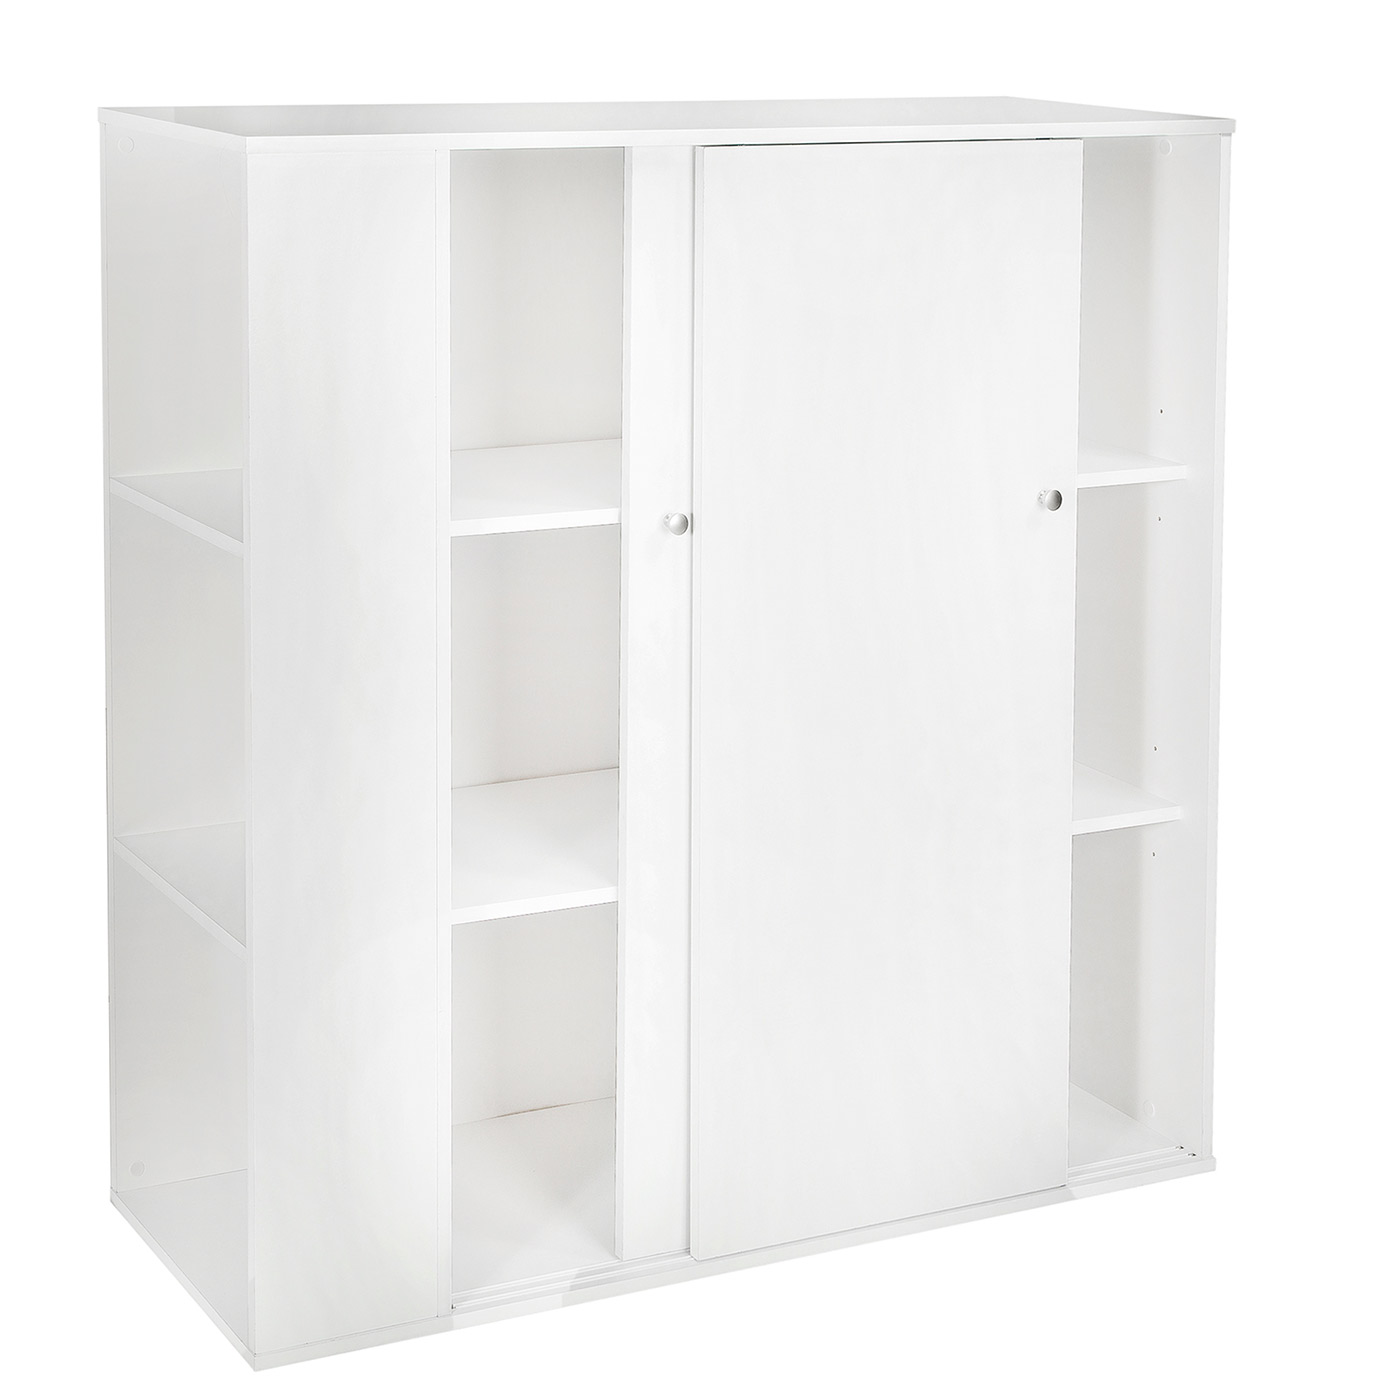 Storage Cabinet Sliding Doors Southshore Storit Kids Storage Cabinet With Sliding Doors In Pure